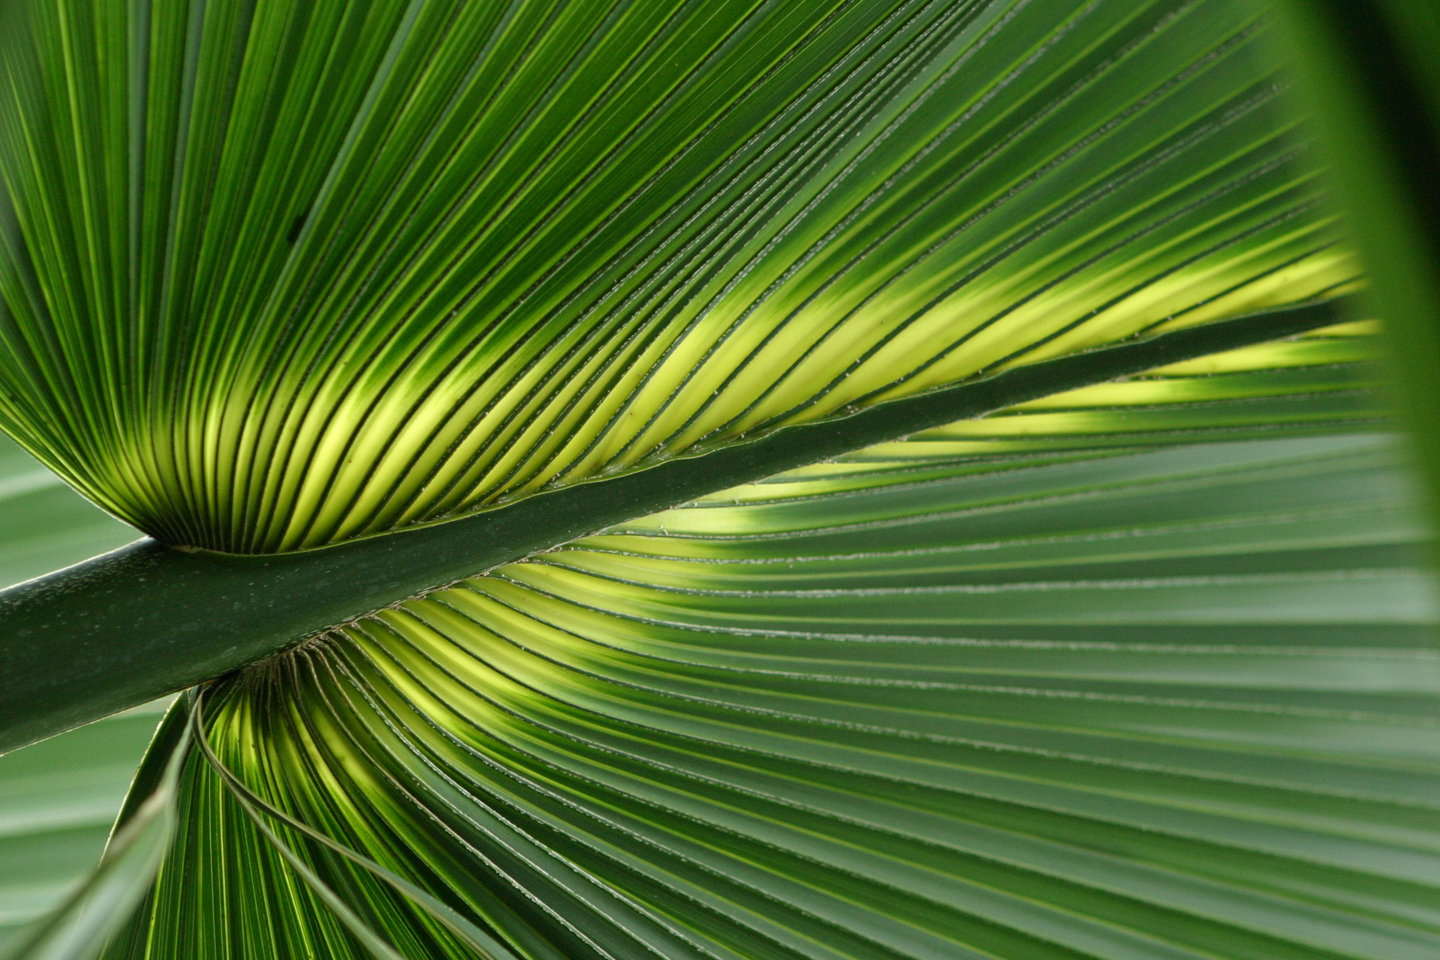 46 Tropical Leaf Wallpaper On Wallpapersafari These are easily removable wallpapers which can be easily attached to the walls without applying any extra glue. tropical leaf wallpaper on wallpapersafari